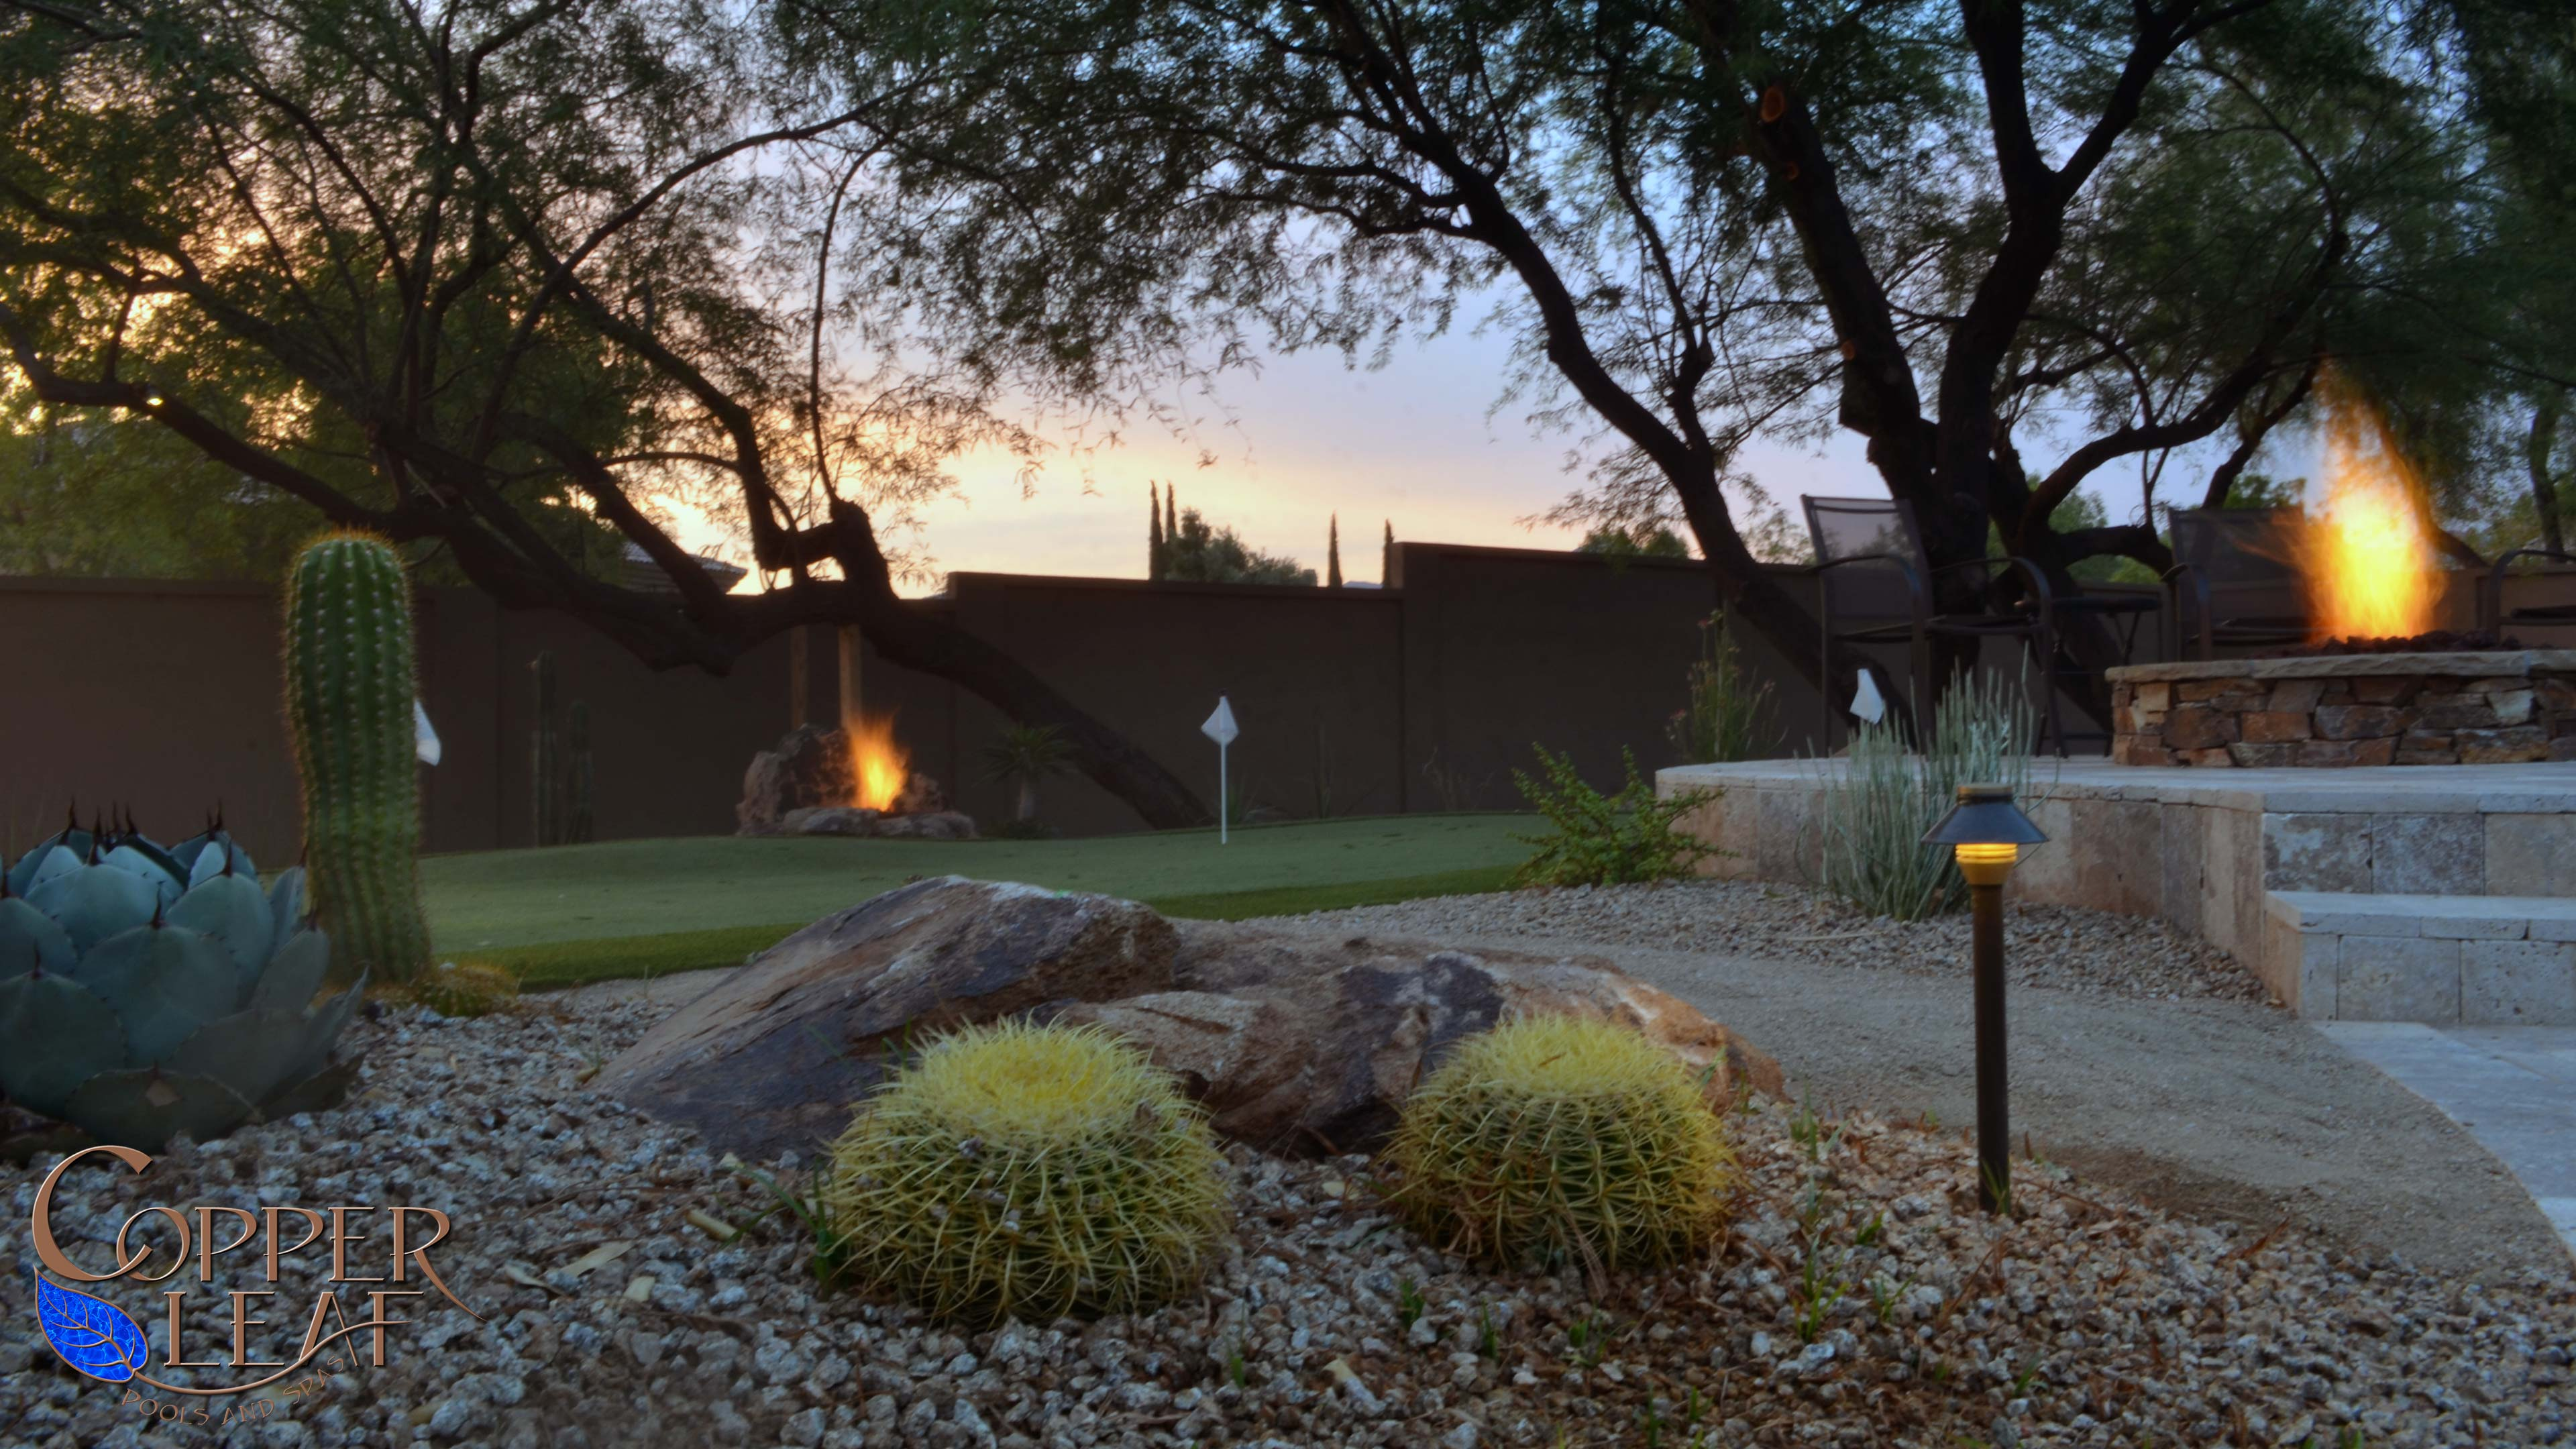 Sunset looking over a putting green made with artificial turf.